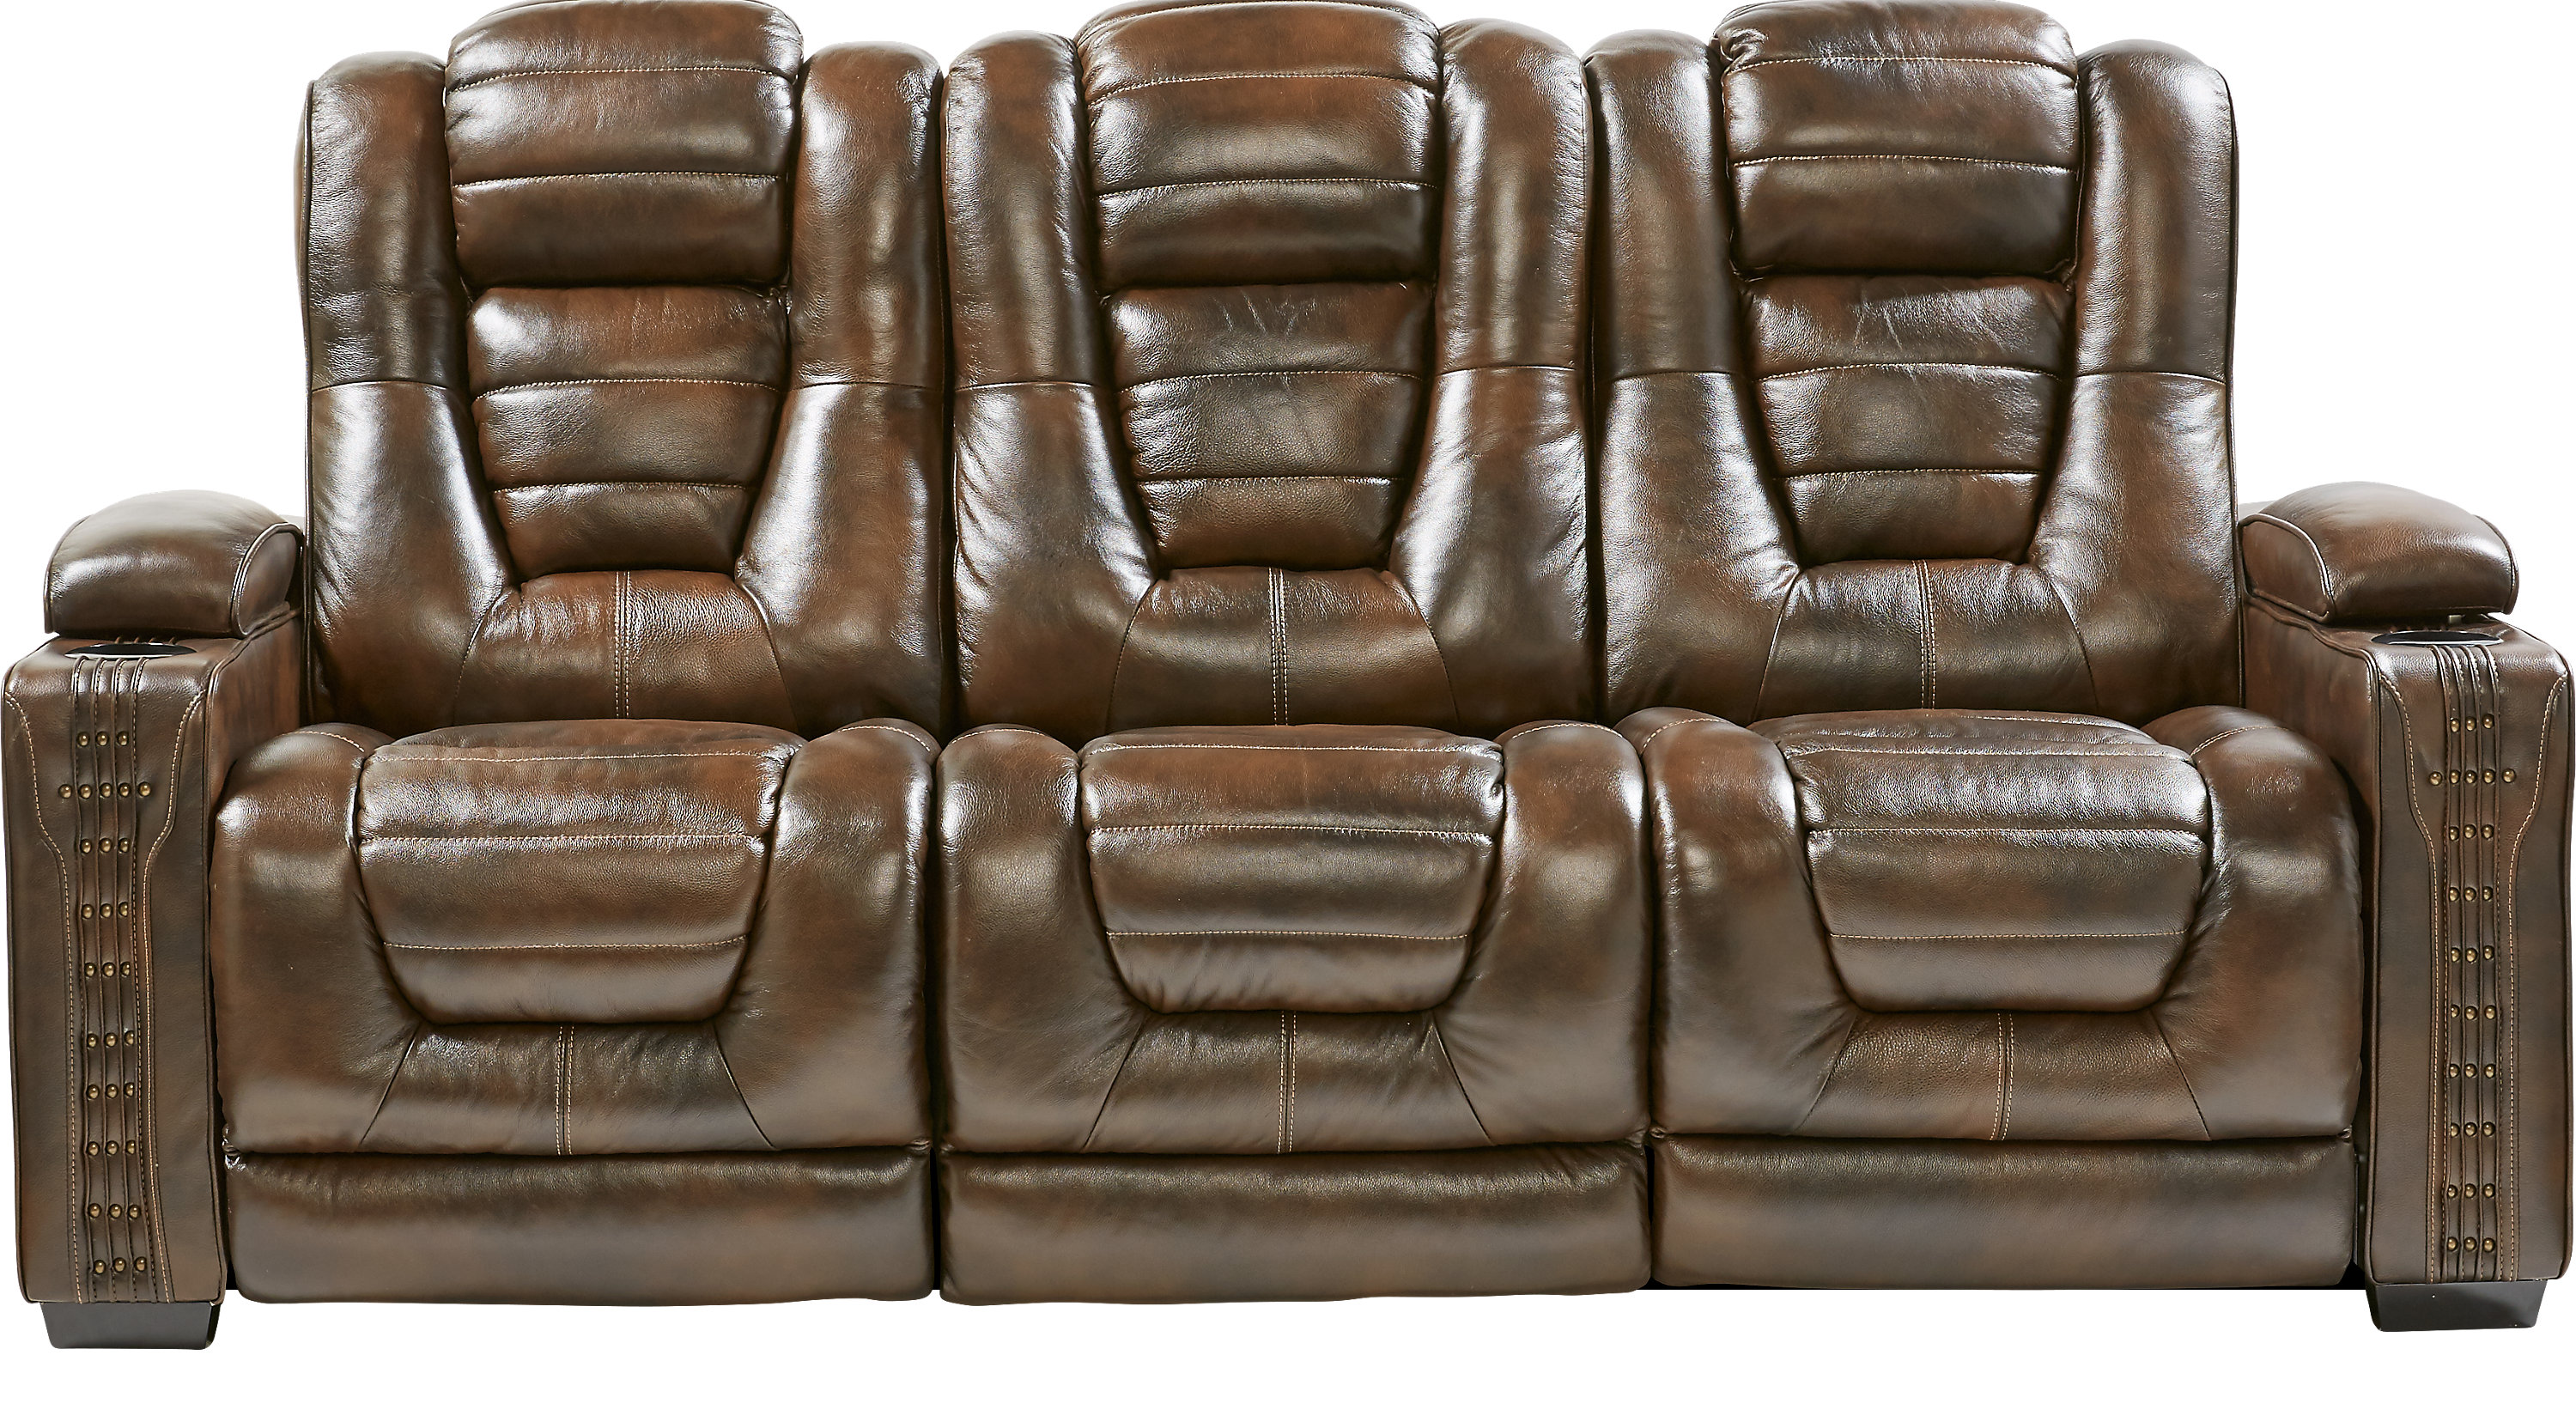 1 499 99 Eric Church Highway To Home Renegade Brown Leather  ~ Baycliffe Reclining Sofa Reviews